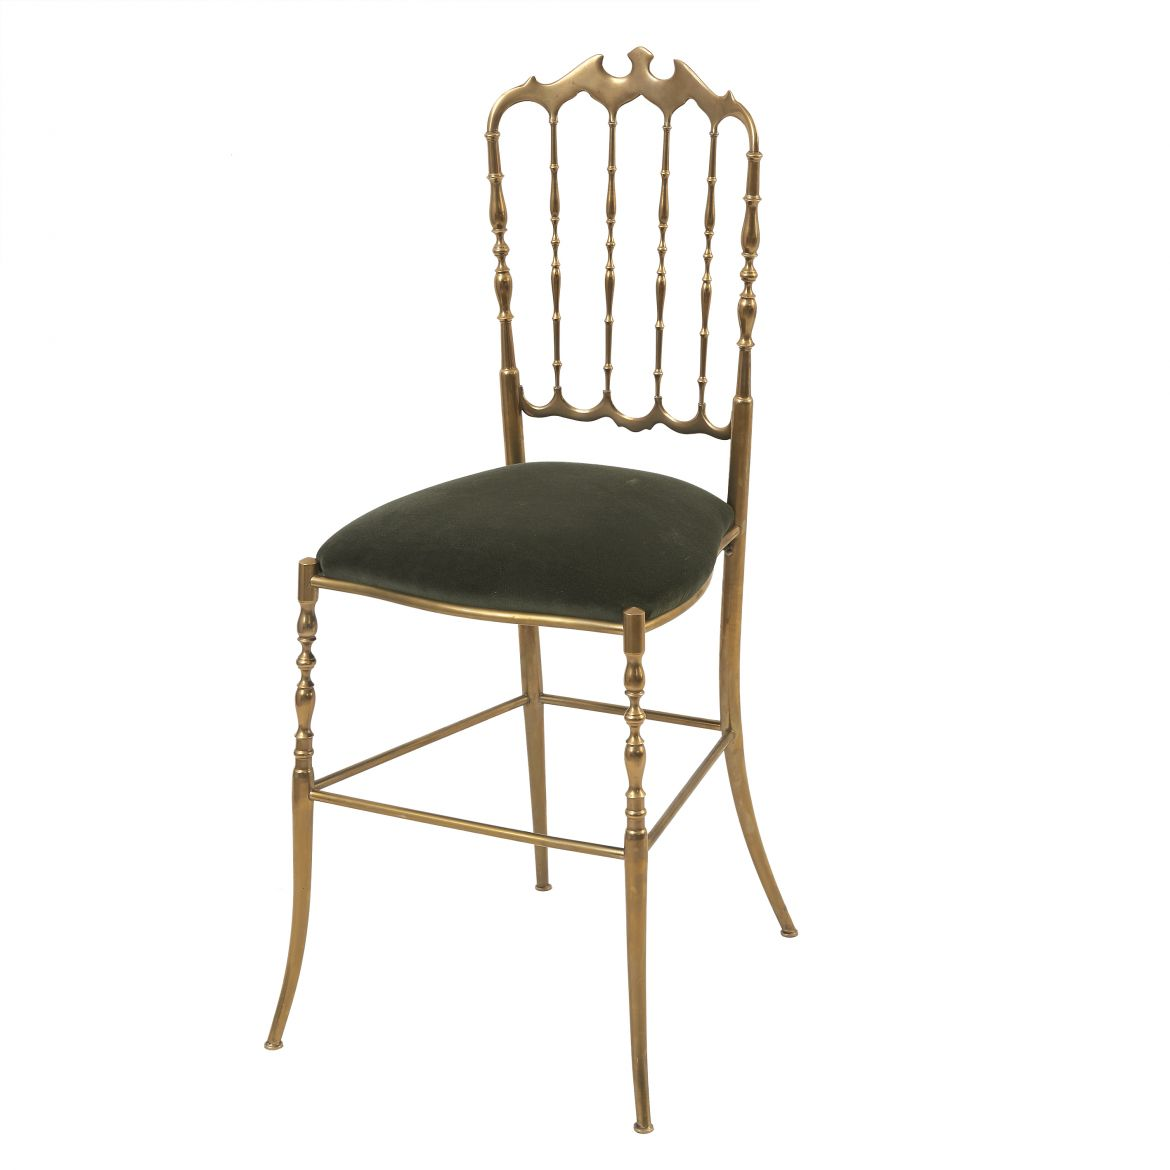 Italian Chiavari Chair